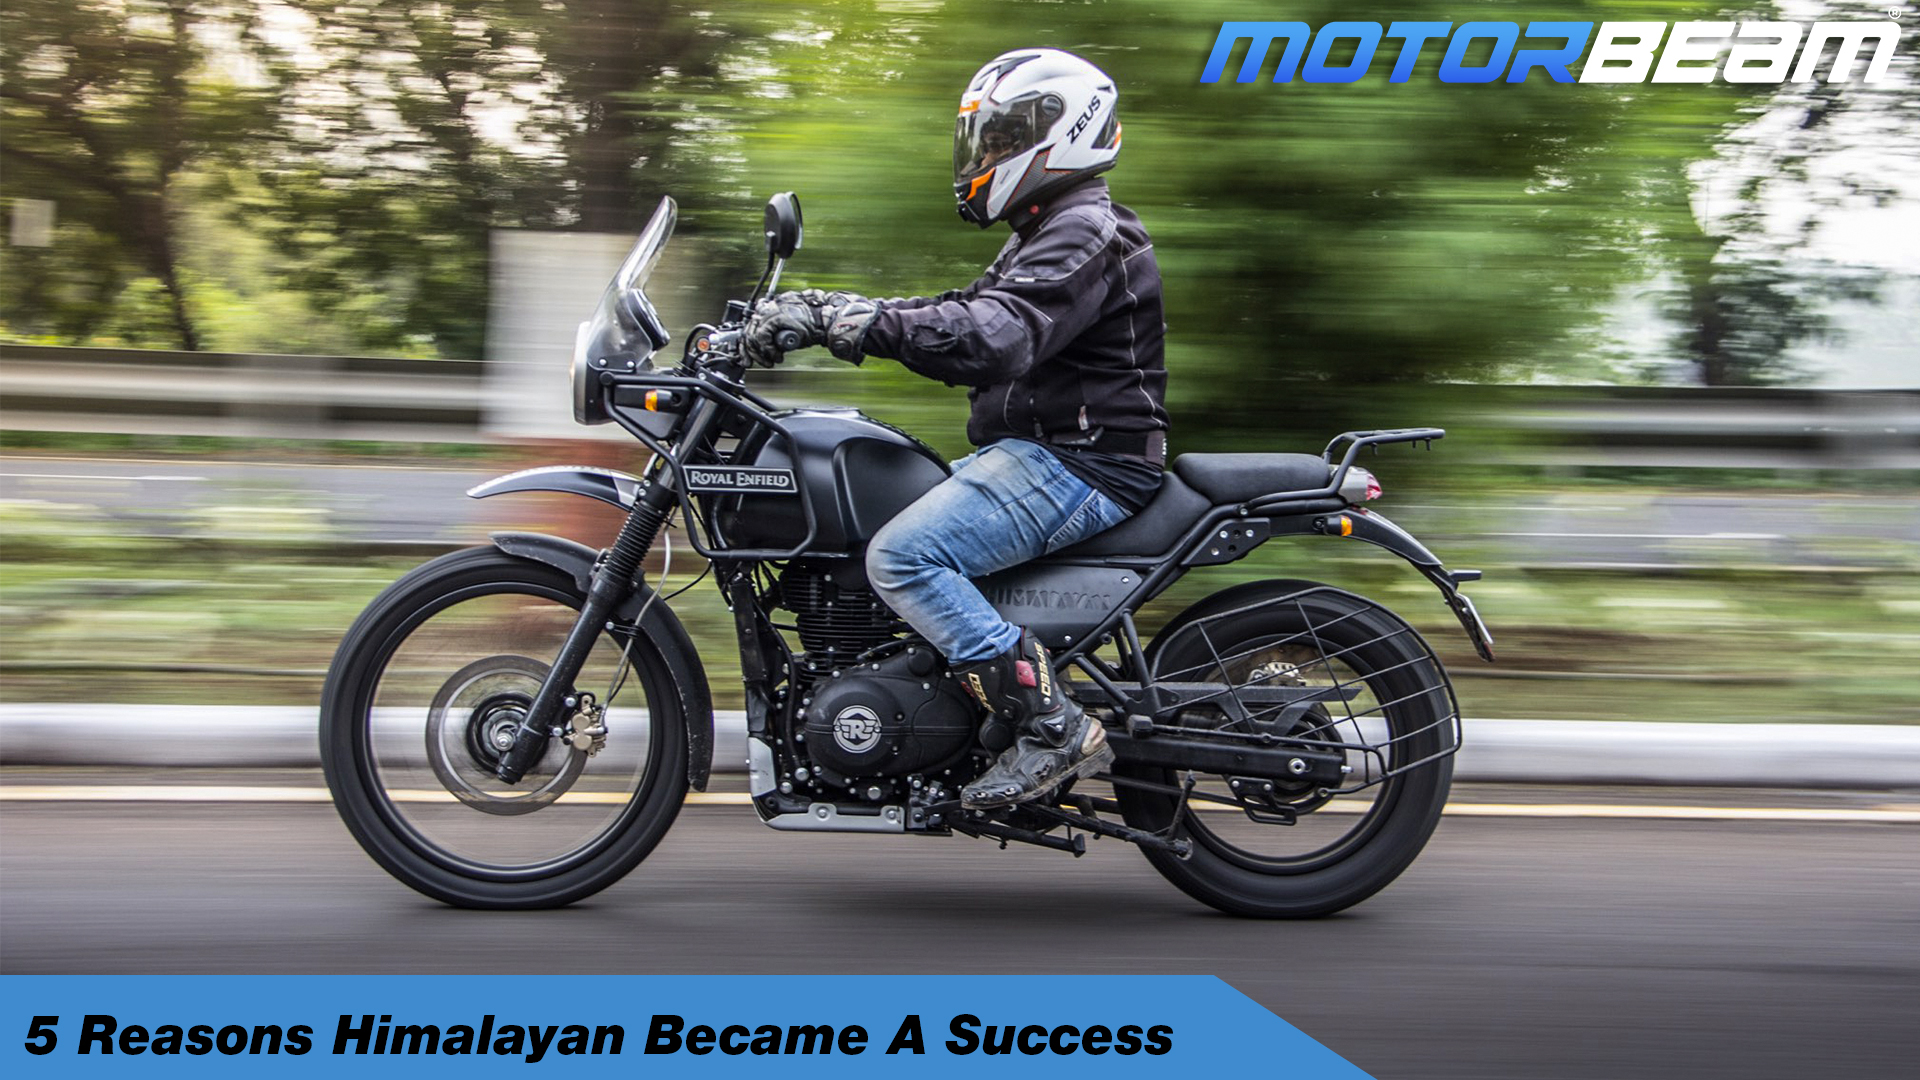 5 Reasons Himalayan Became A Success Video